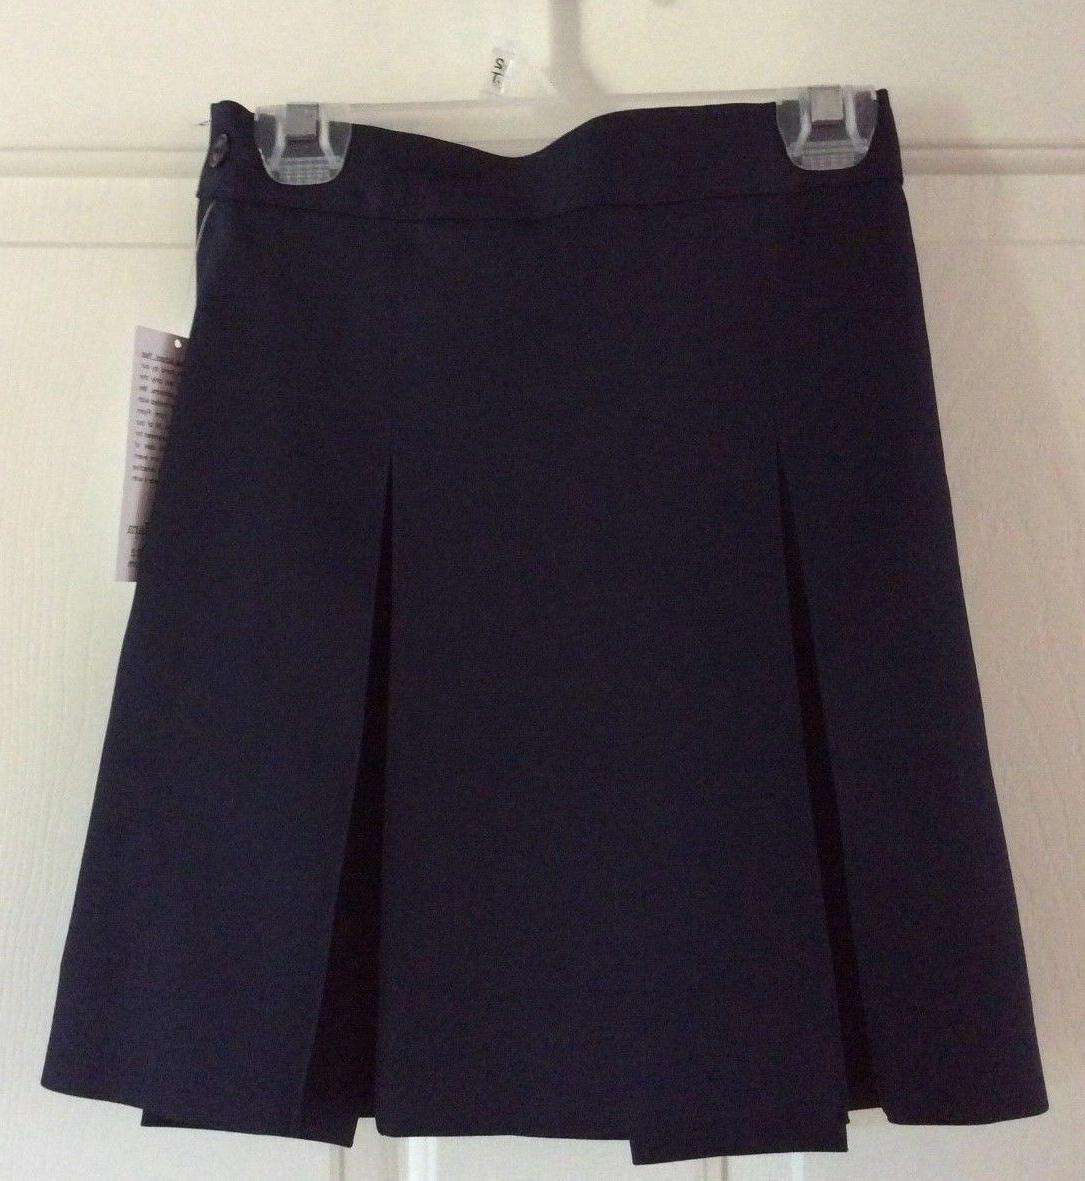 uniforms navy blue skirt girl 6c nwt